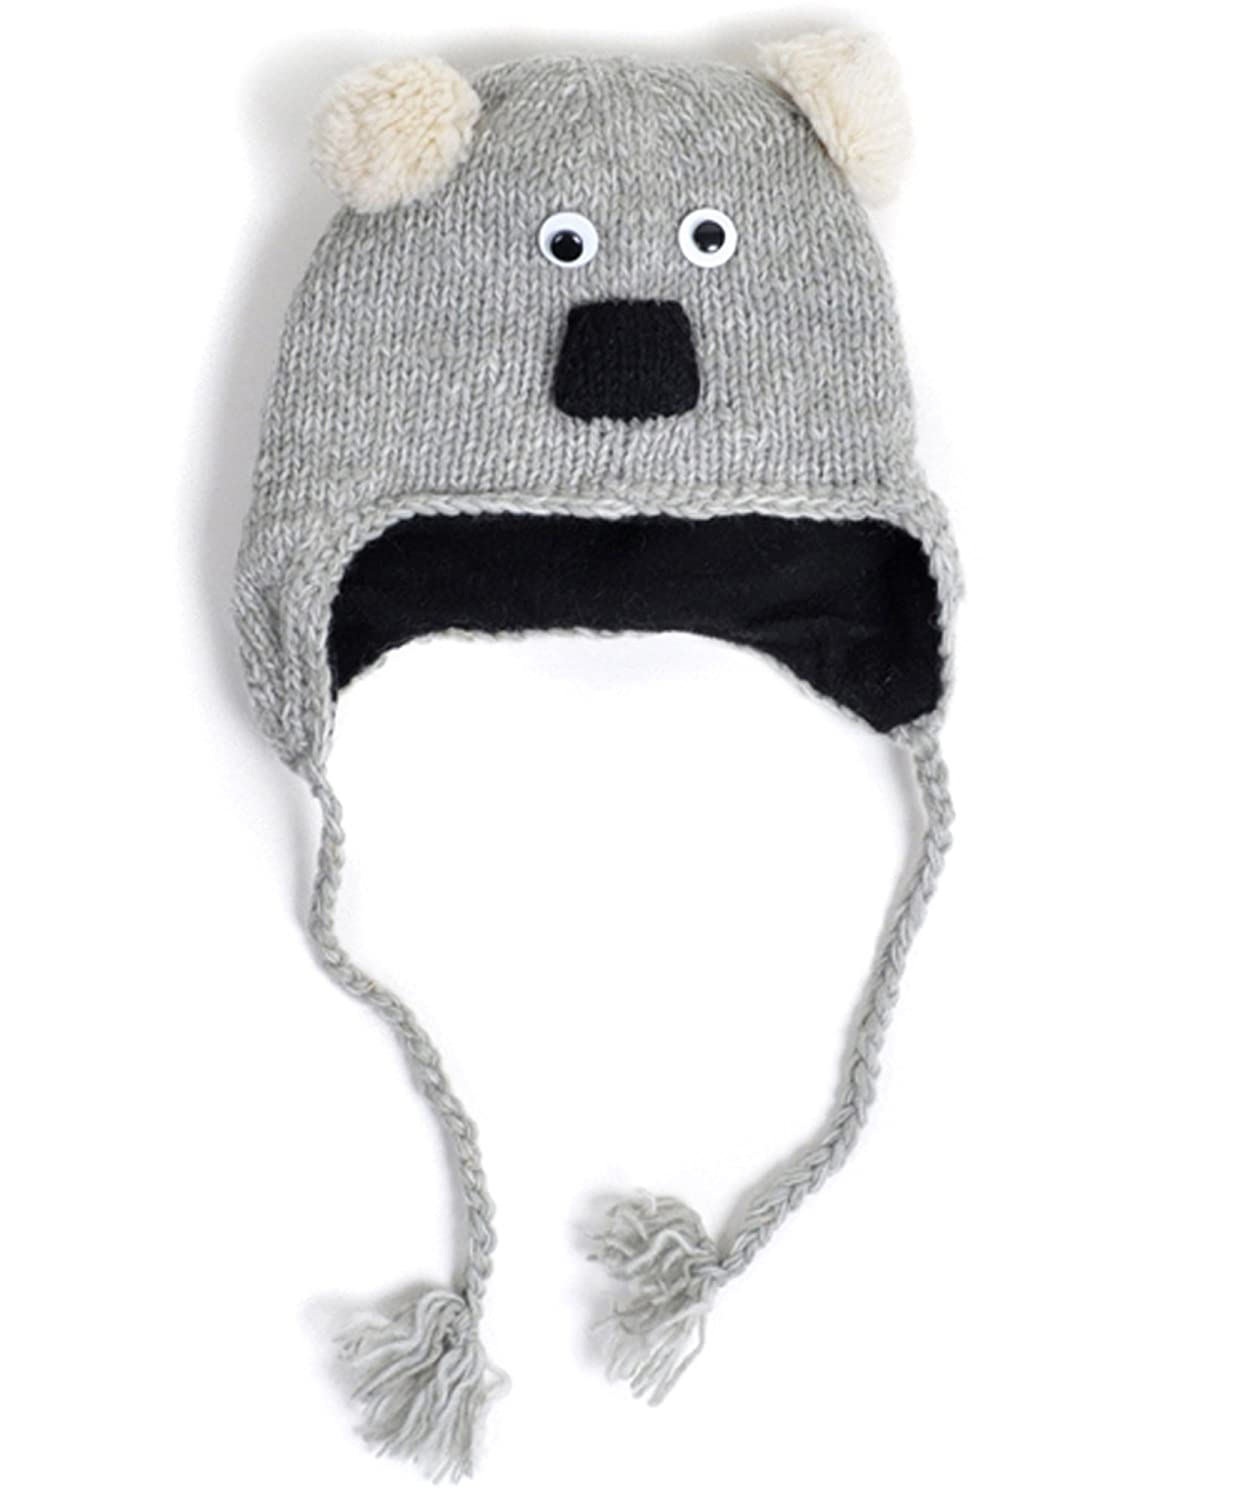 dbd4d27bc 100% Wool 'Hat-imals' Plush Knit Winter Hats (Wool Collection), Koala  (AHW005)